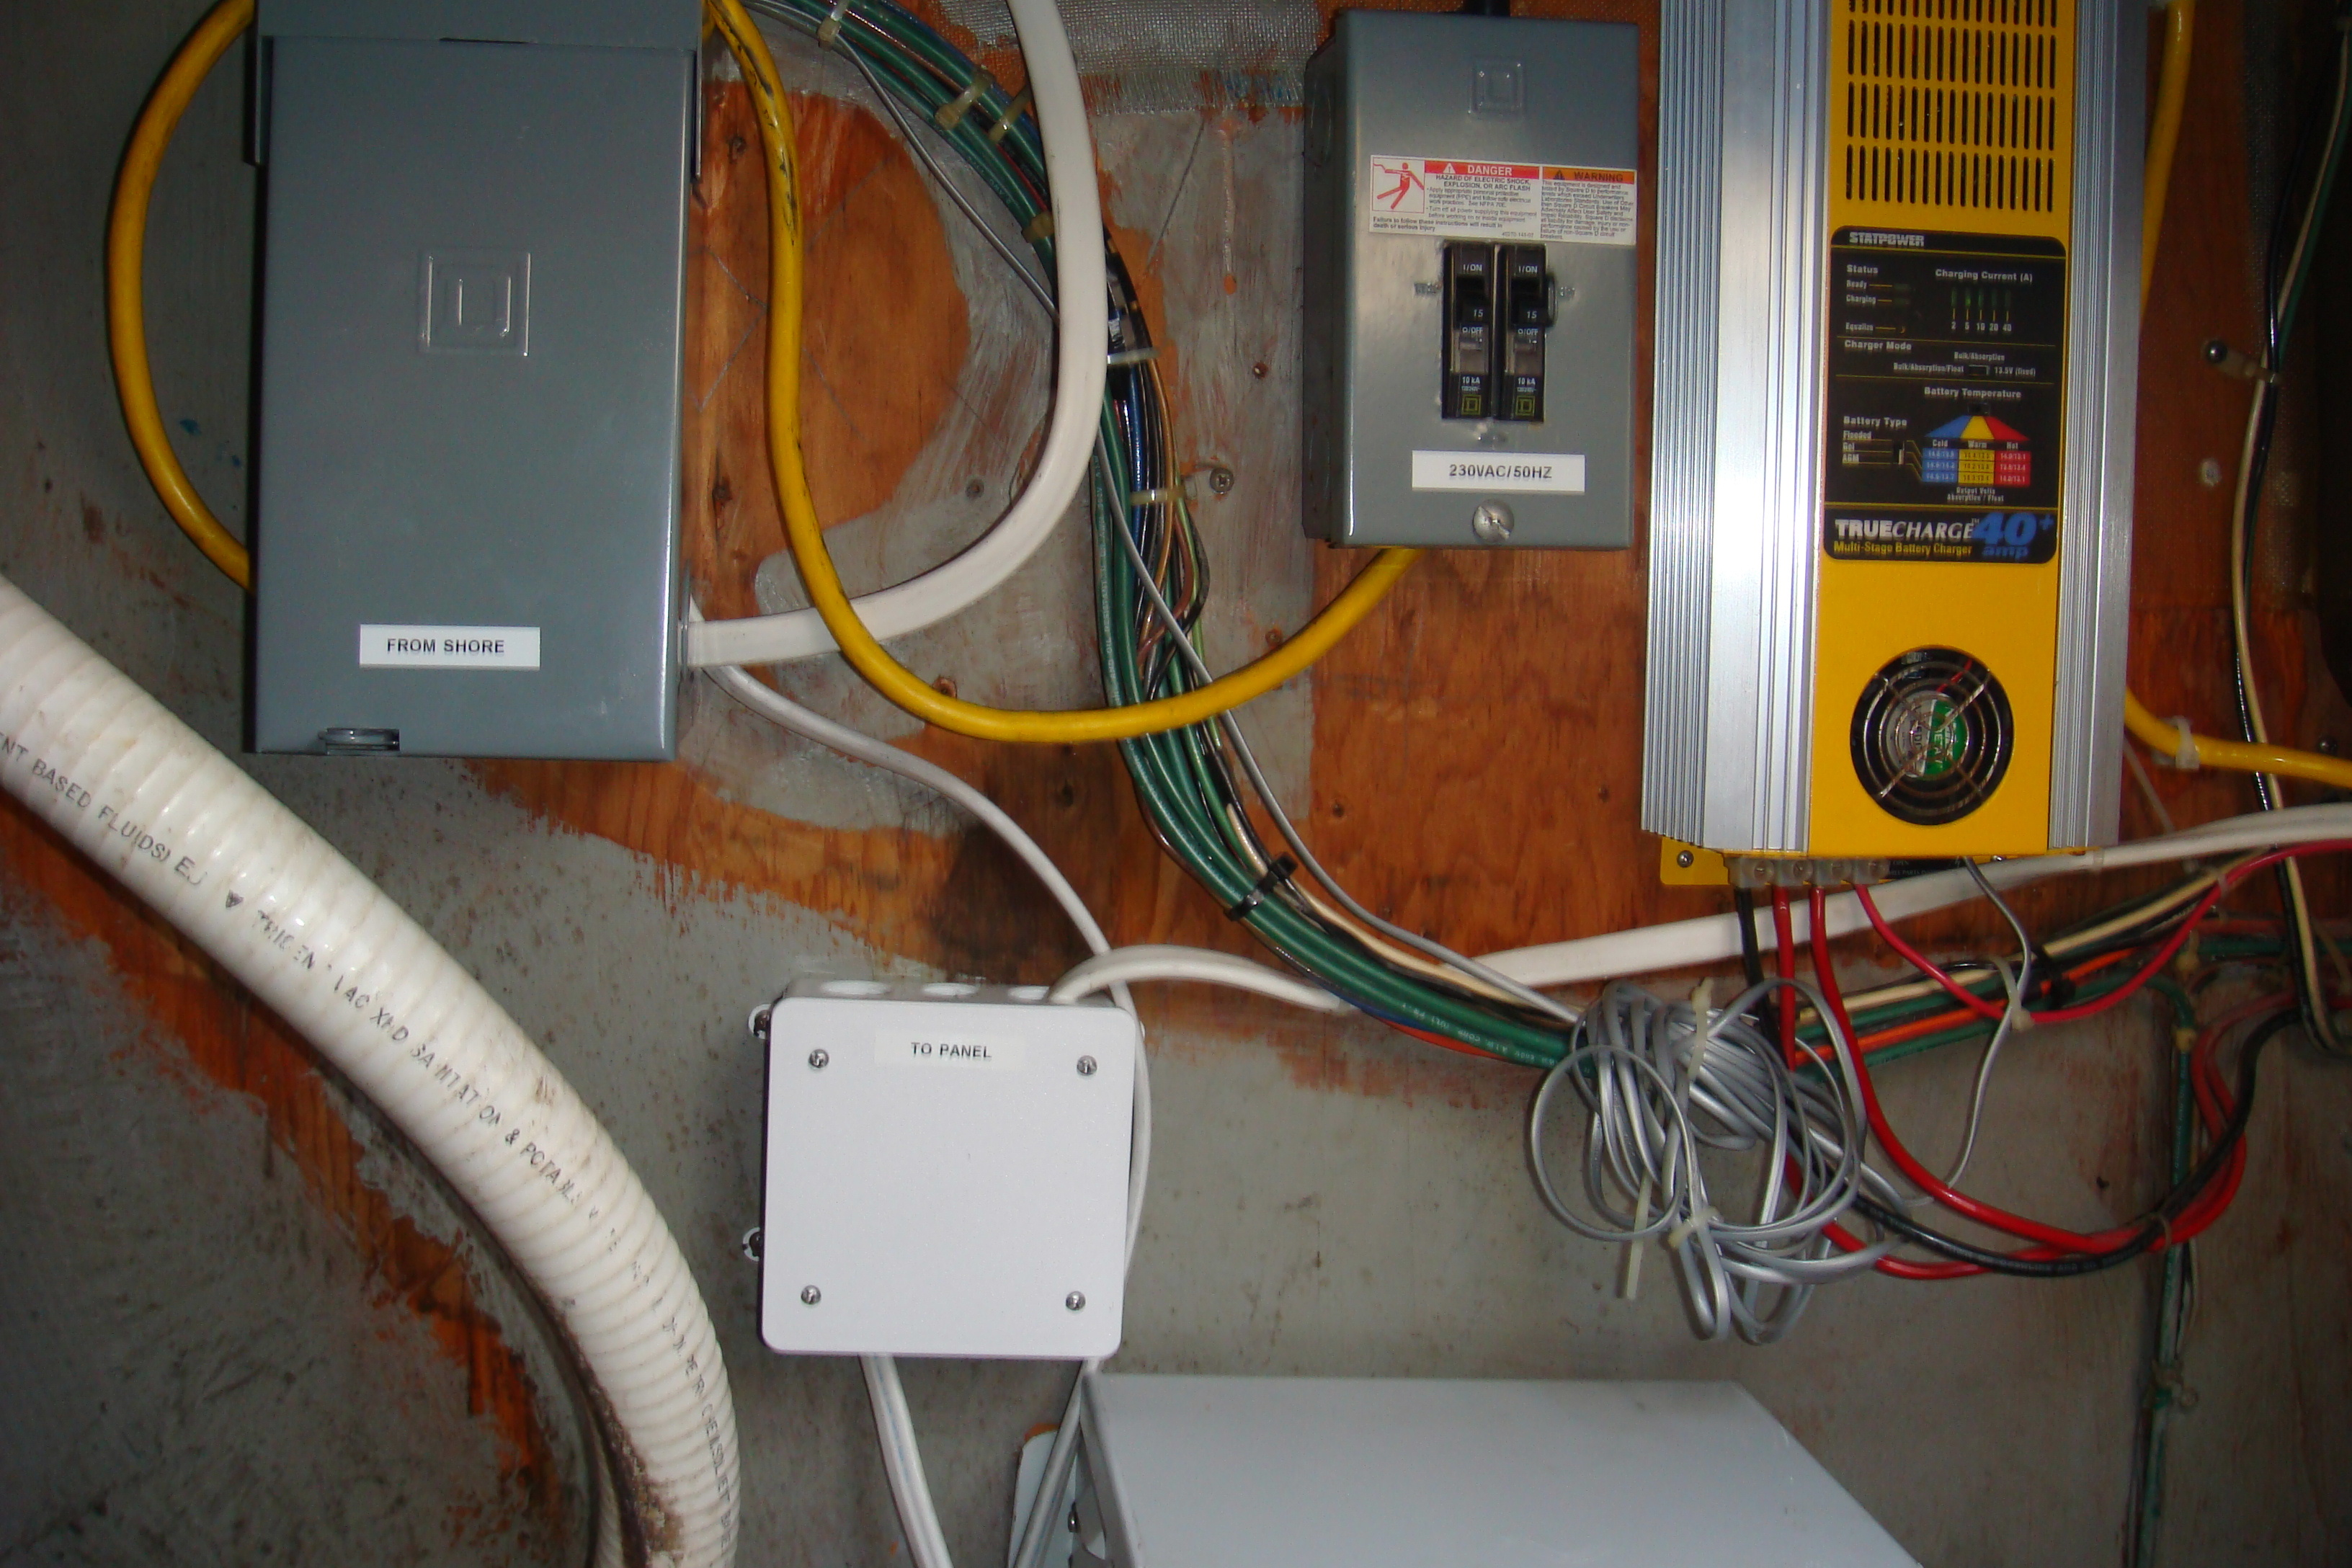 European Shore Power Plan 230 Vac Wiring Click On Picture To View At Full Resolution